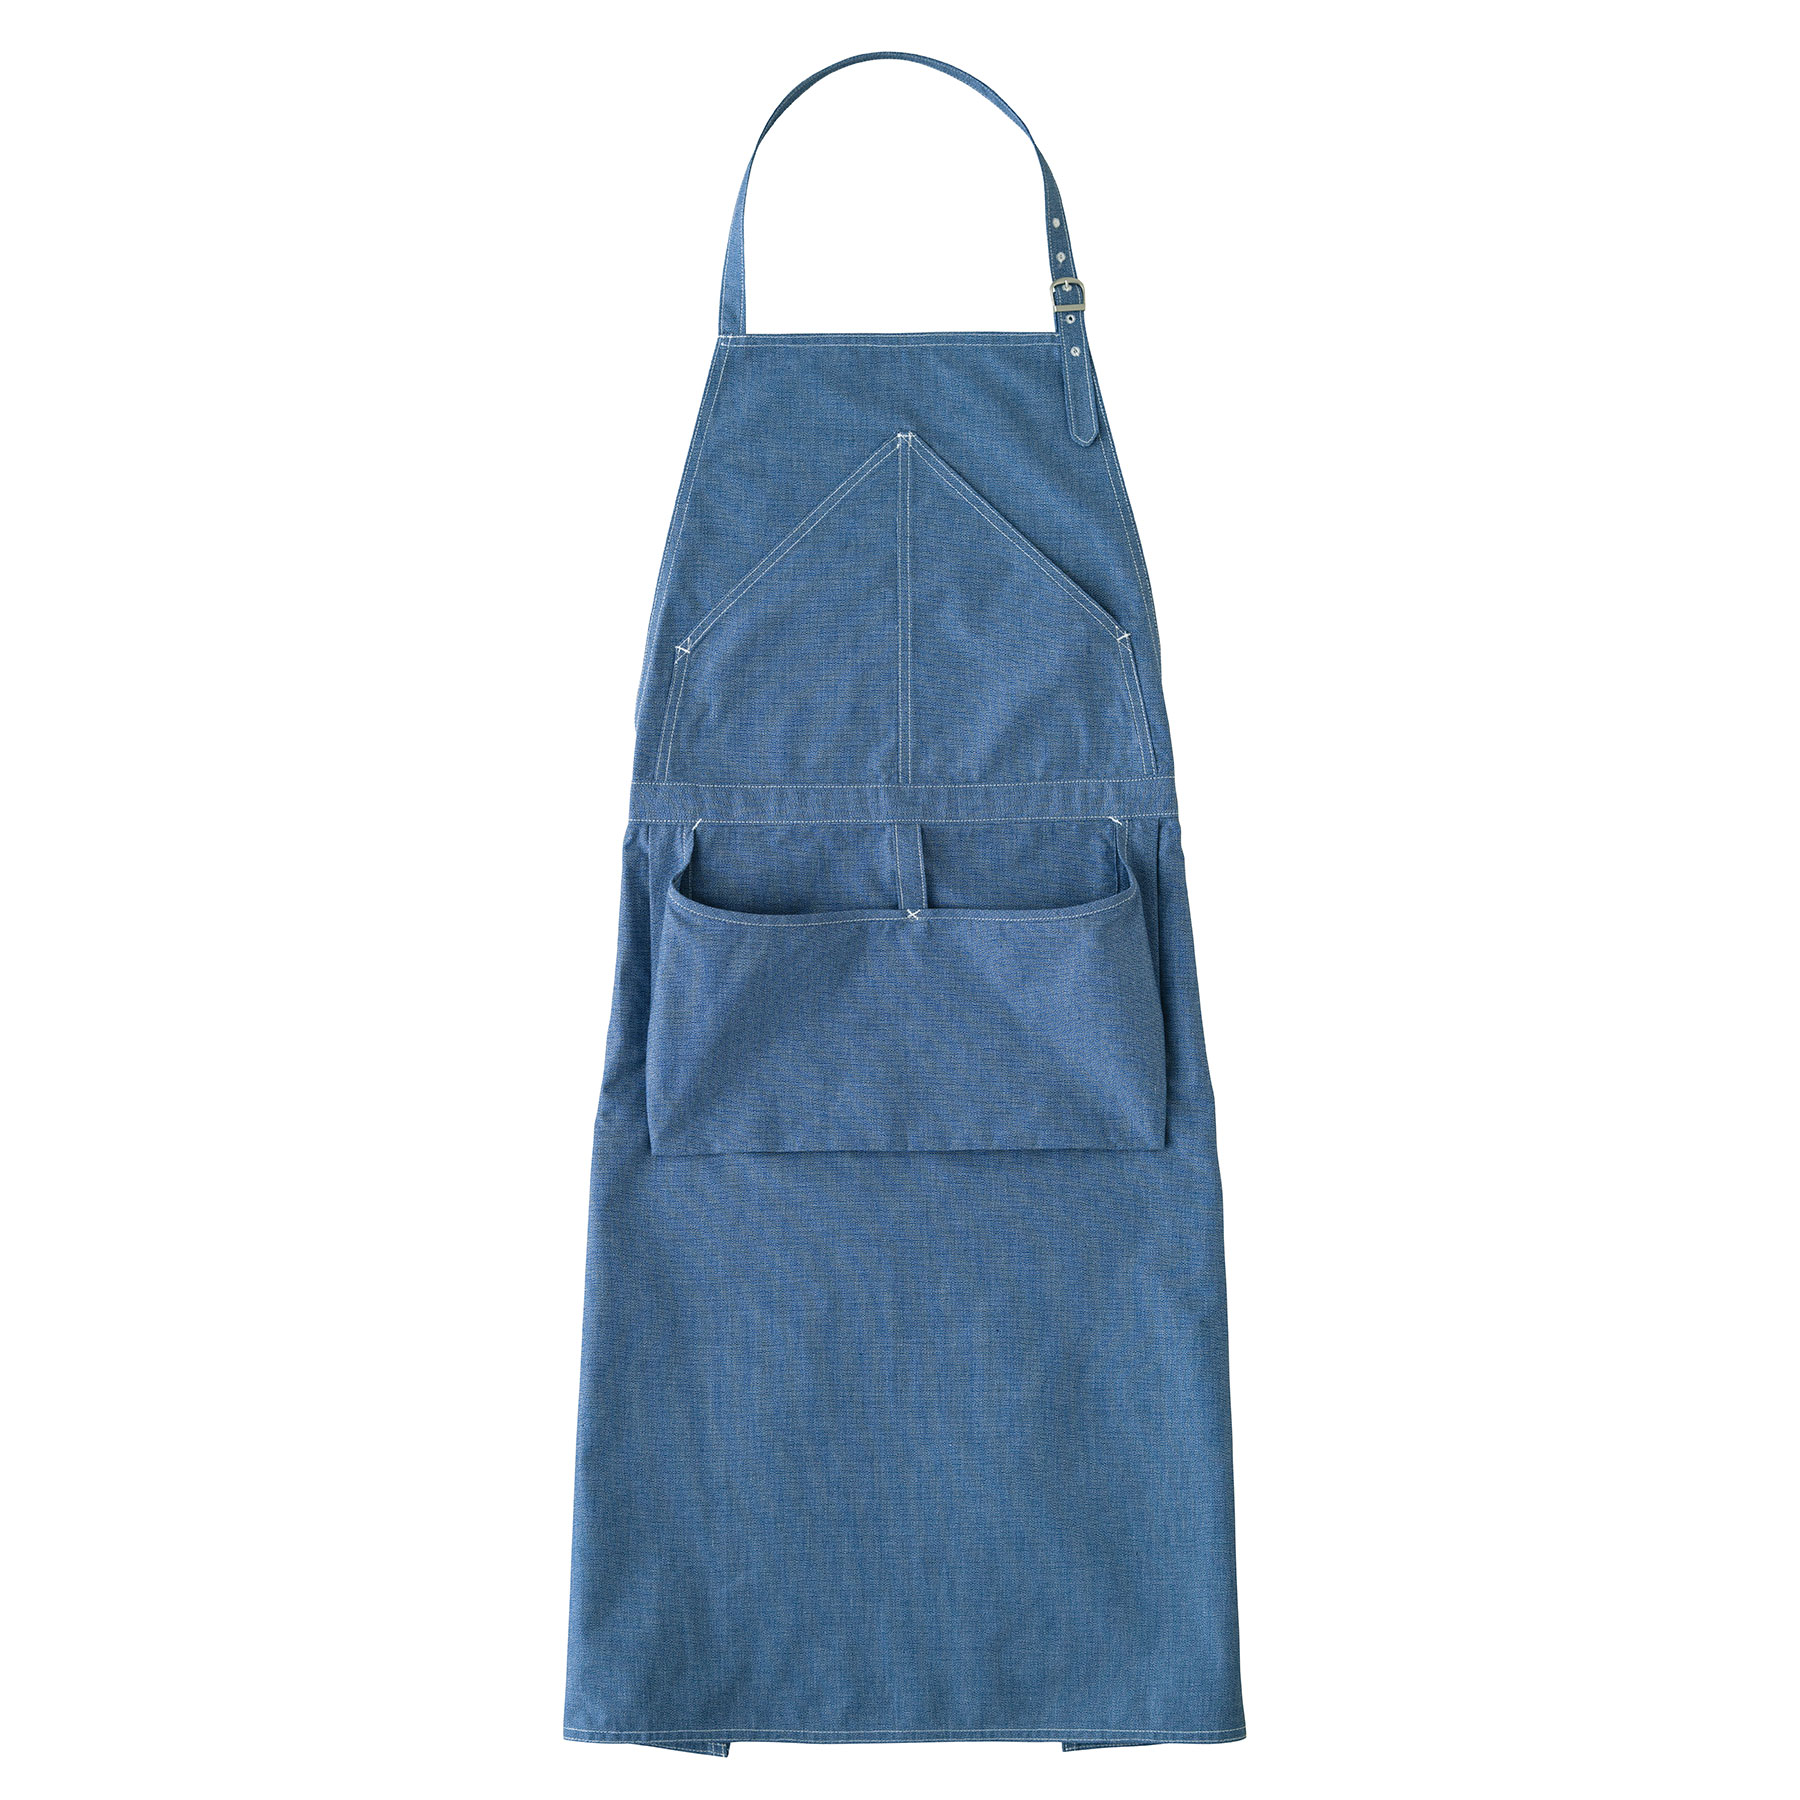 best aprons money can buy styleforum 5 best aprons apron gift guide best aprons for men best men's aprons styleforum